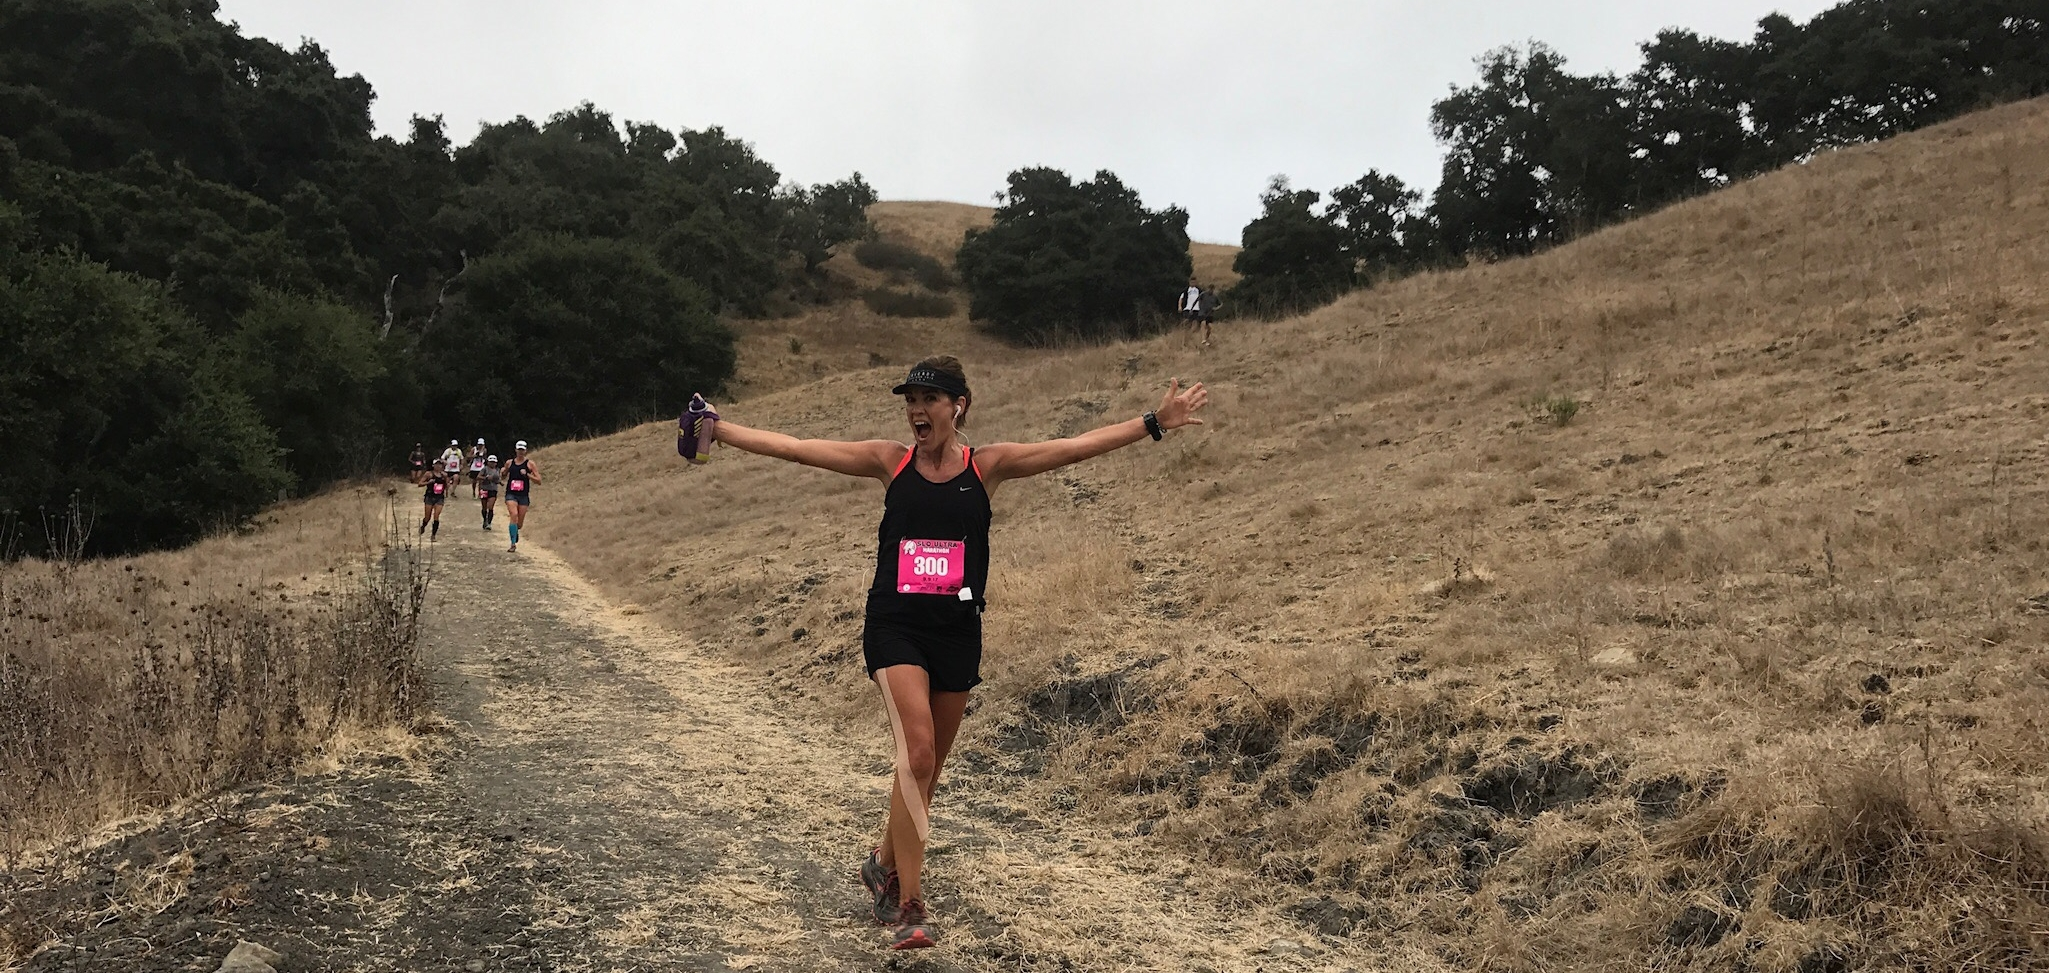 Amy Parkinson of San Luis Obispo enjoying the trails of the SLO Ultra; she placed 2nd in the Women's 50-59 age group.